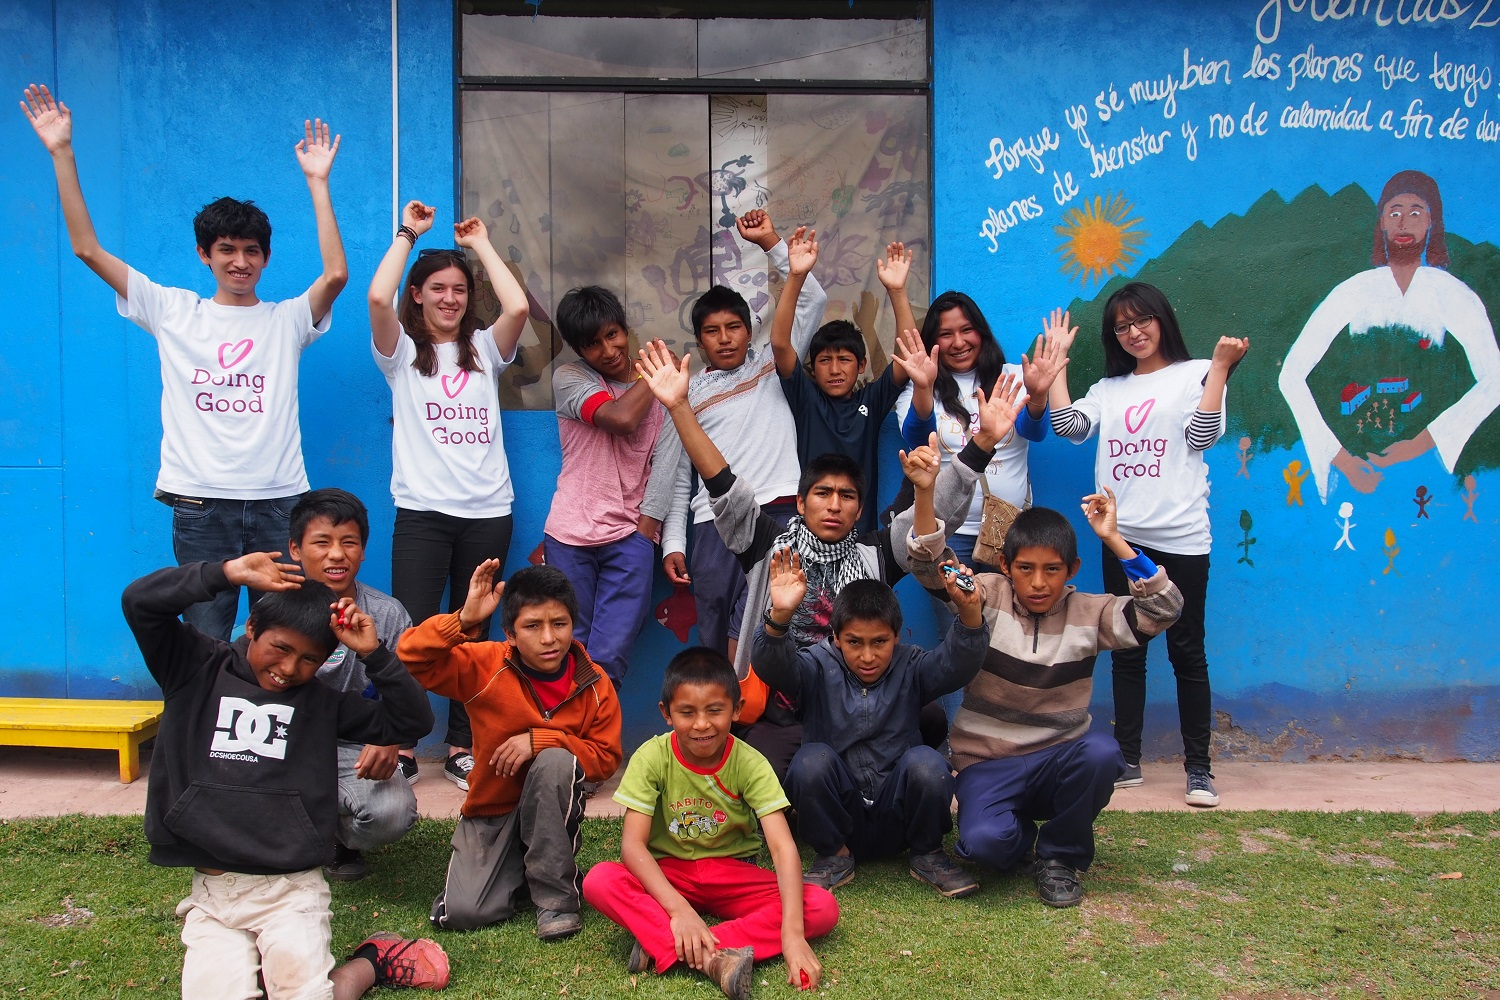 Latin American Foundation for the Future in Peru feeling fulfilled after a Good Deeds Day.